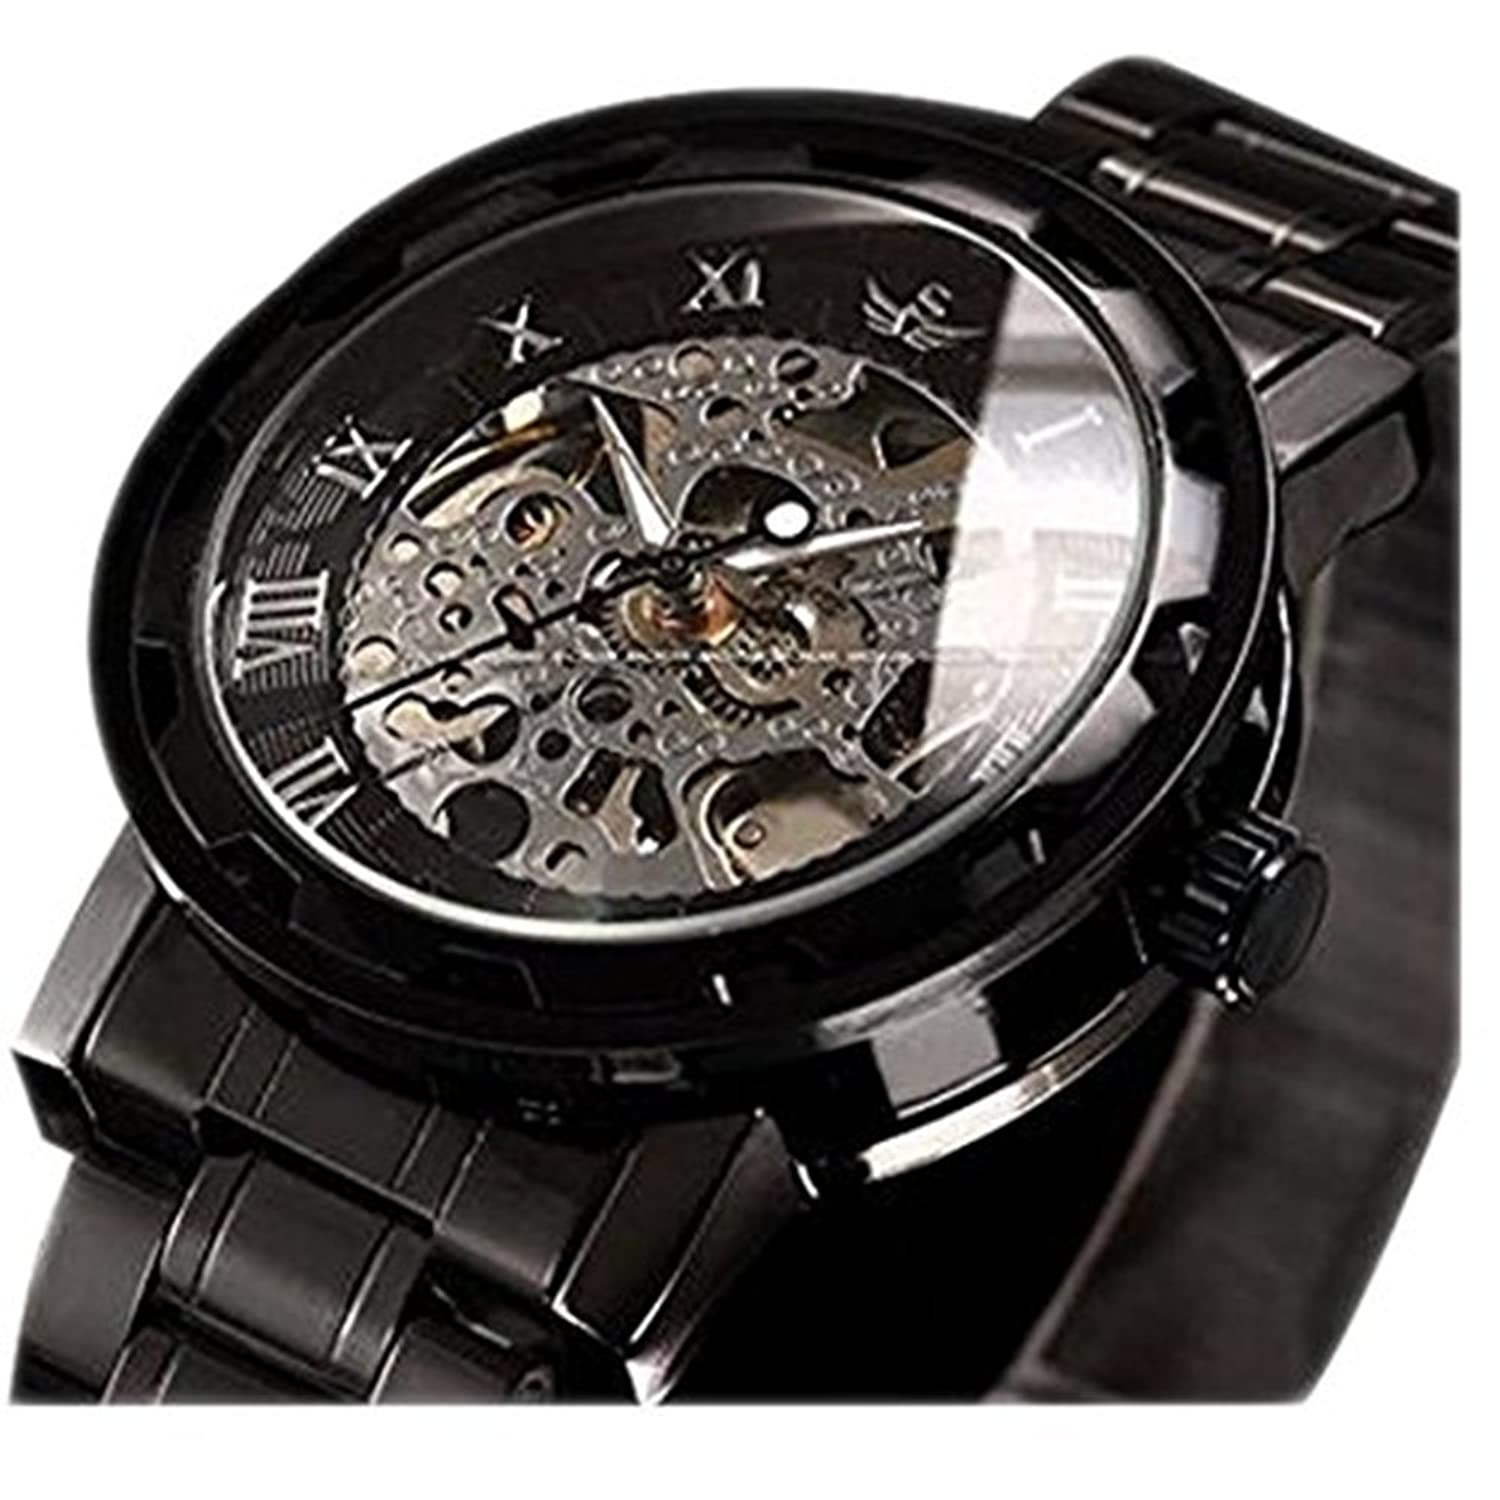 ultra watches fusion copy top uk classic thin black dial hublot